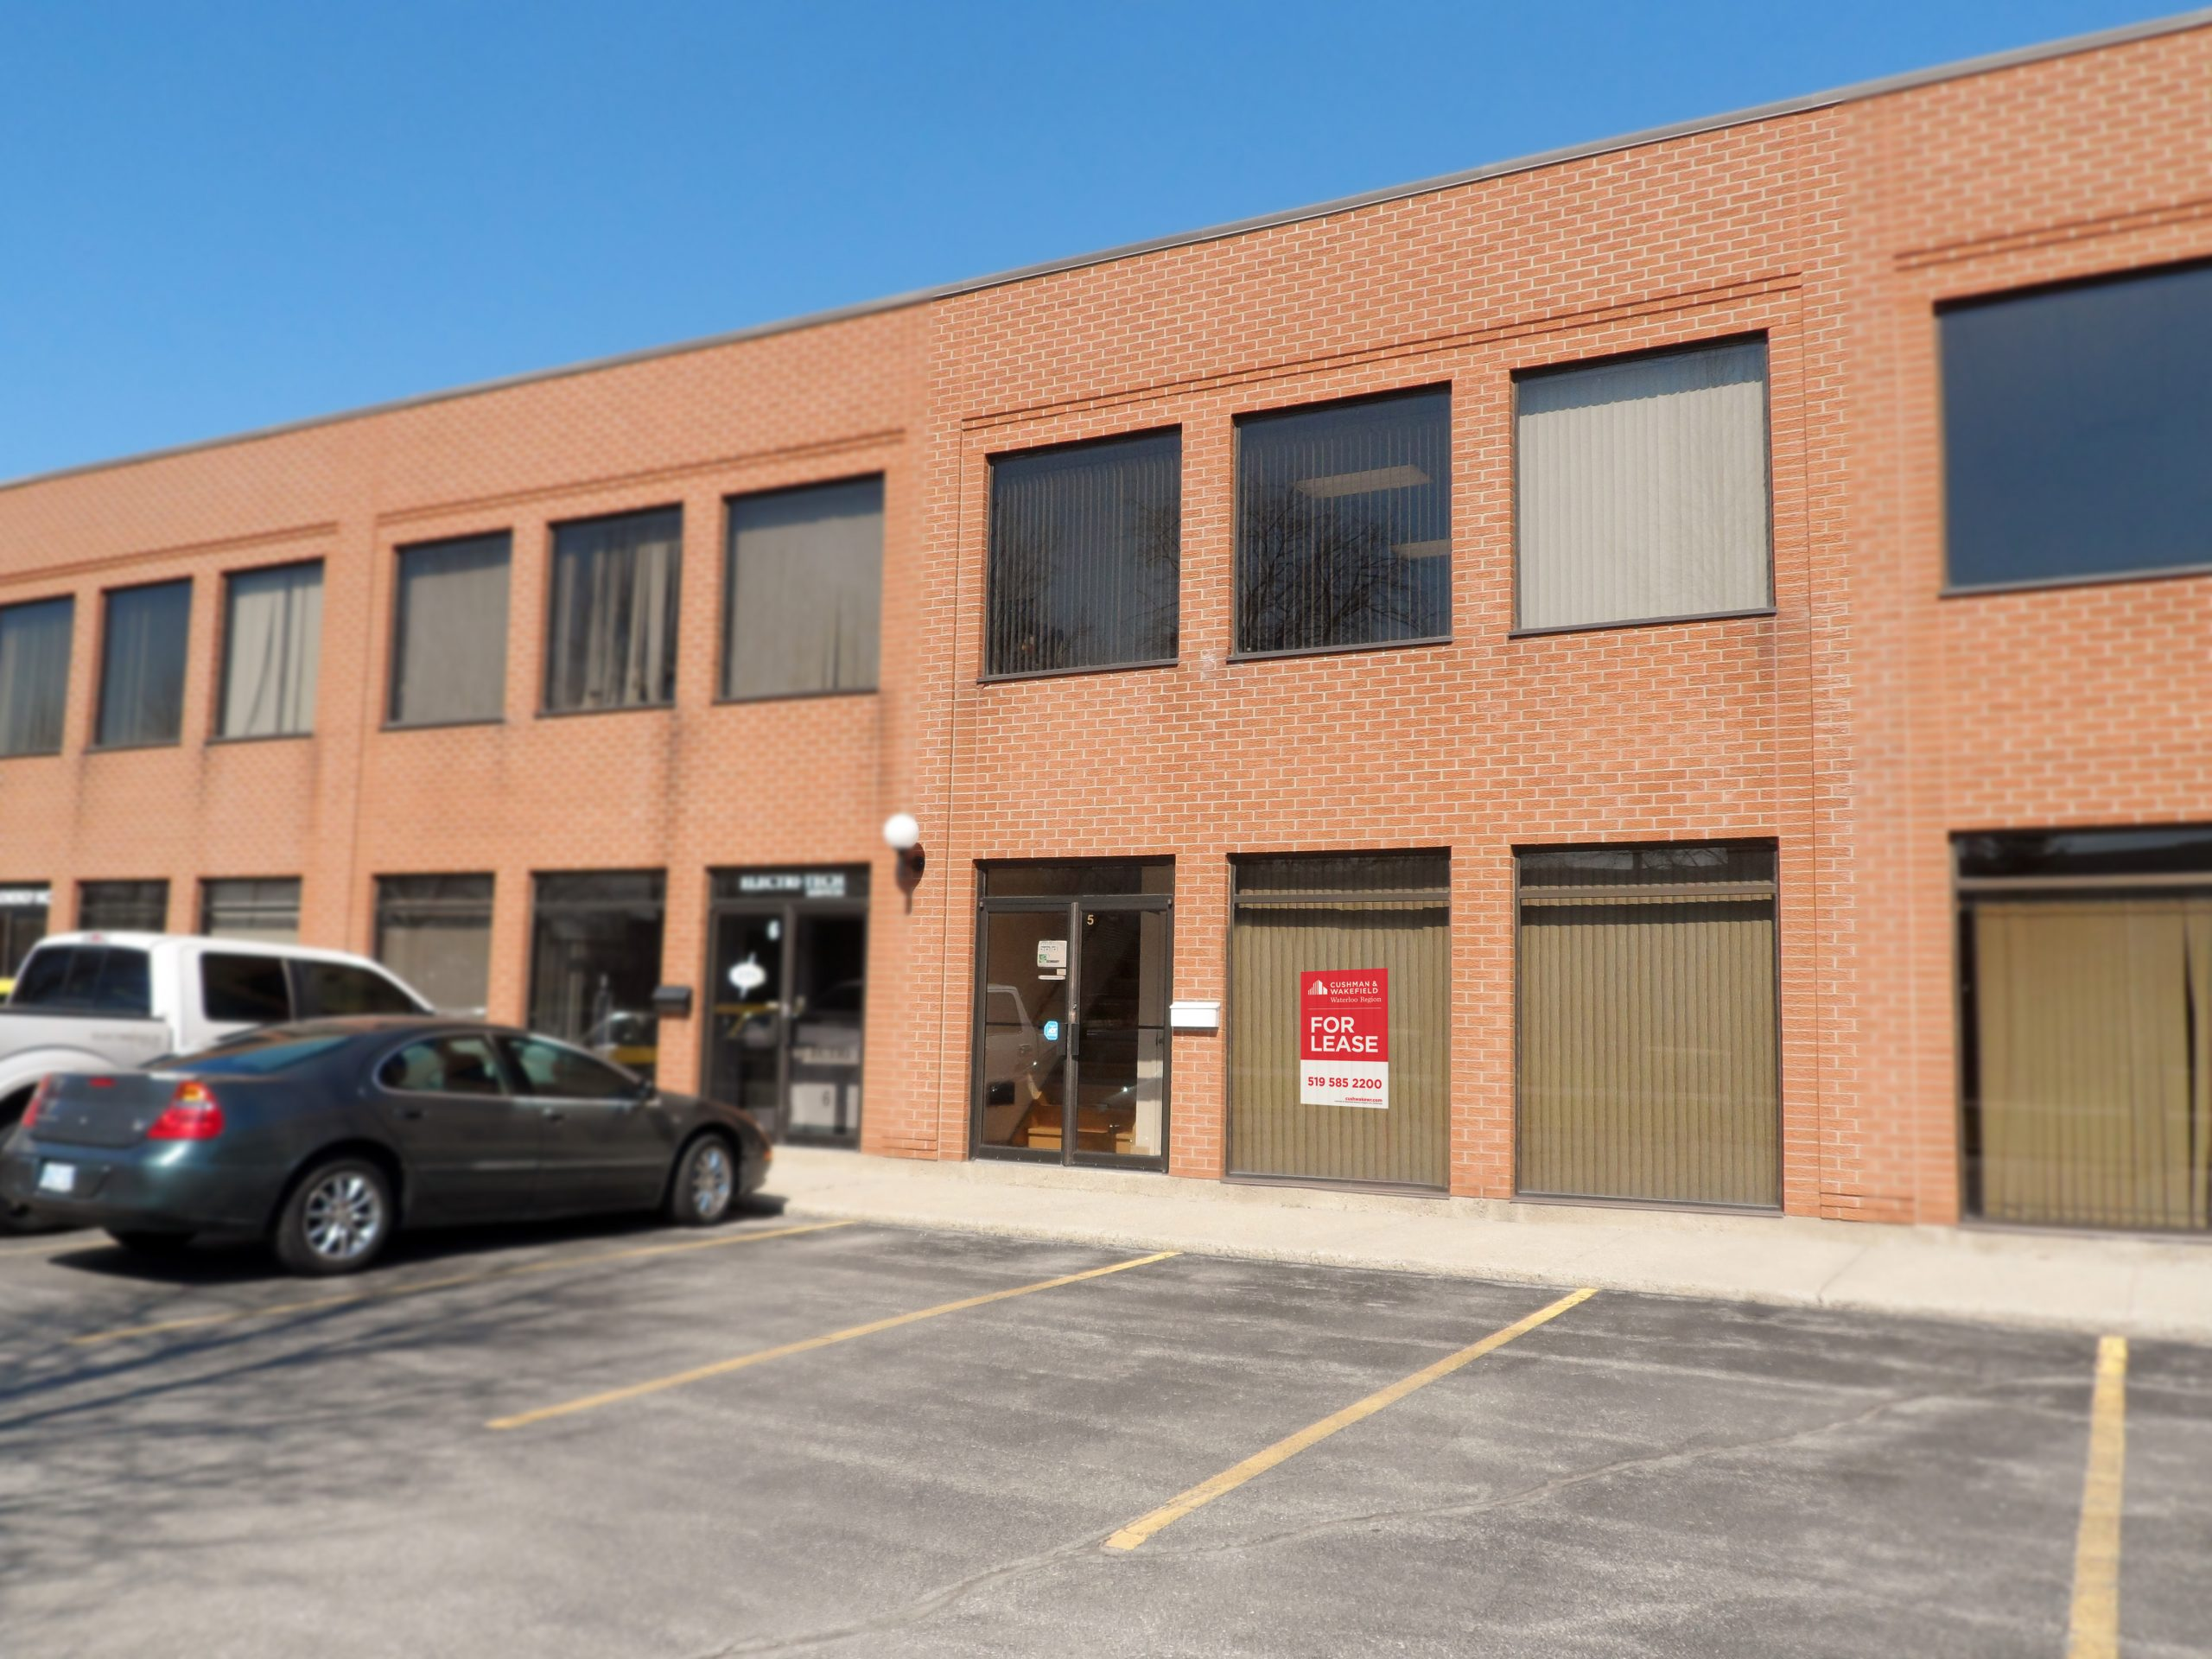 565 Trillium Drive,(Unit #5), Kitchener | Industrial Condo Unit Available for Lease